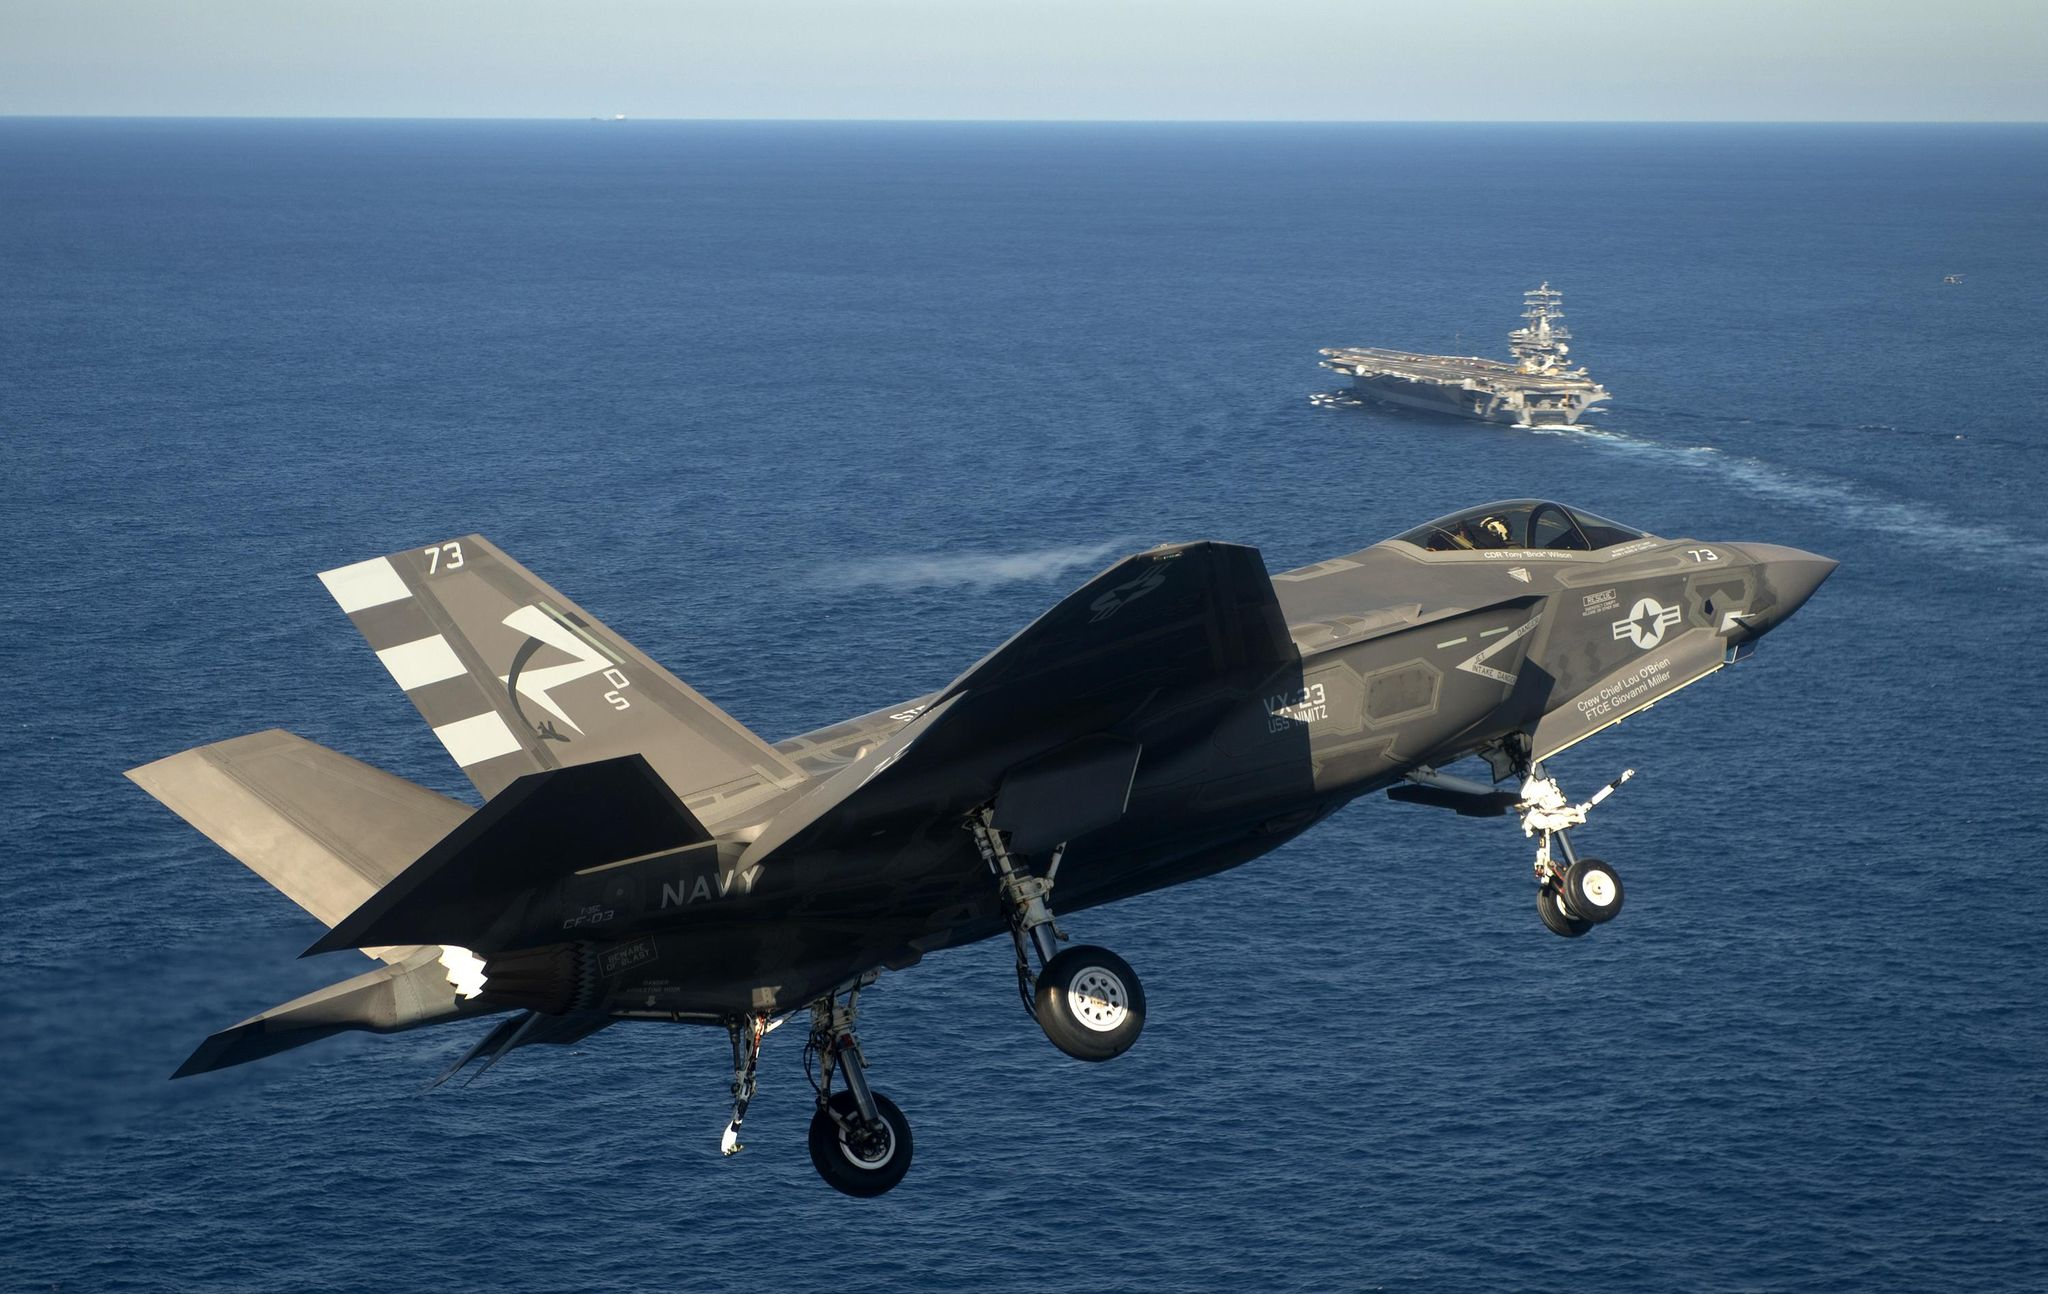 Air Force, Navy restocked with planes, missiles as Congress counters U.S. air power decline